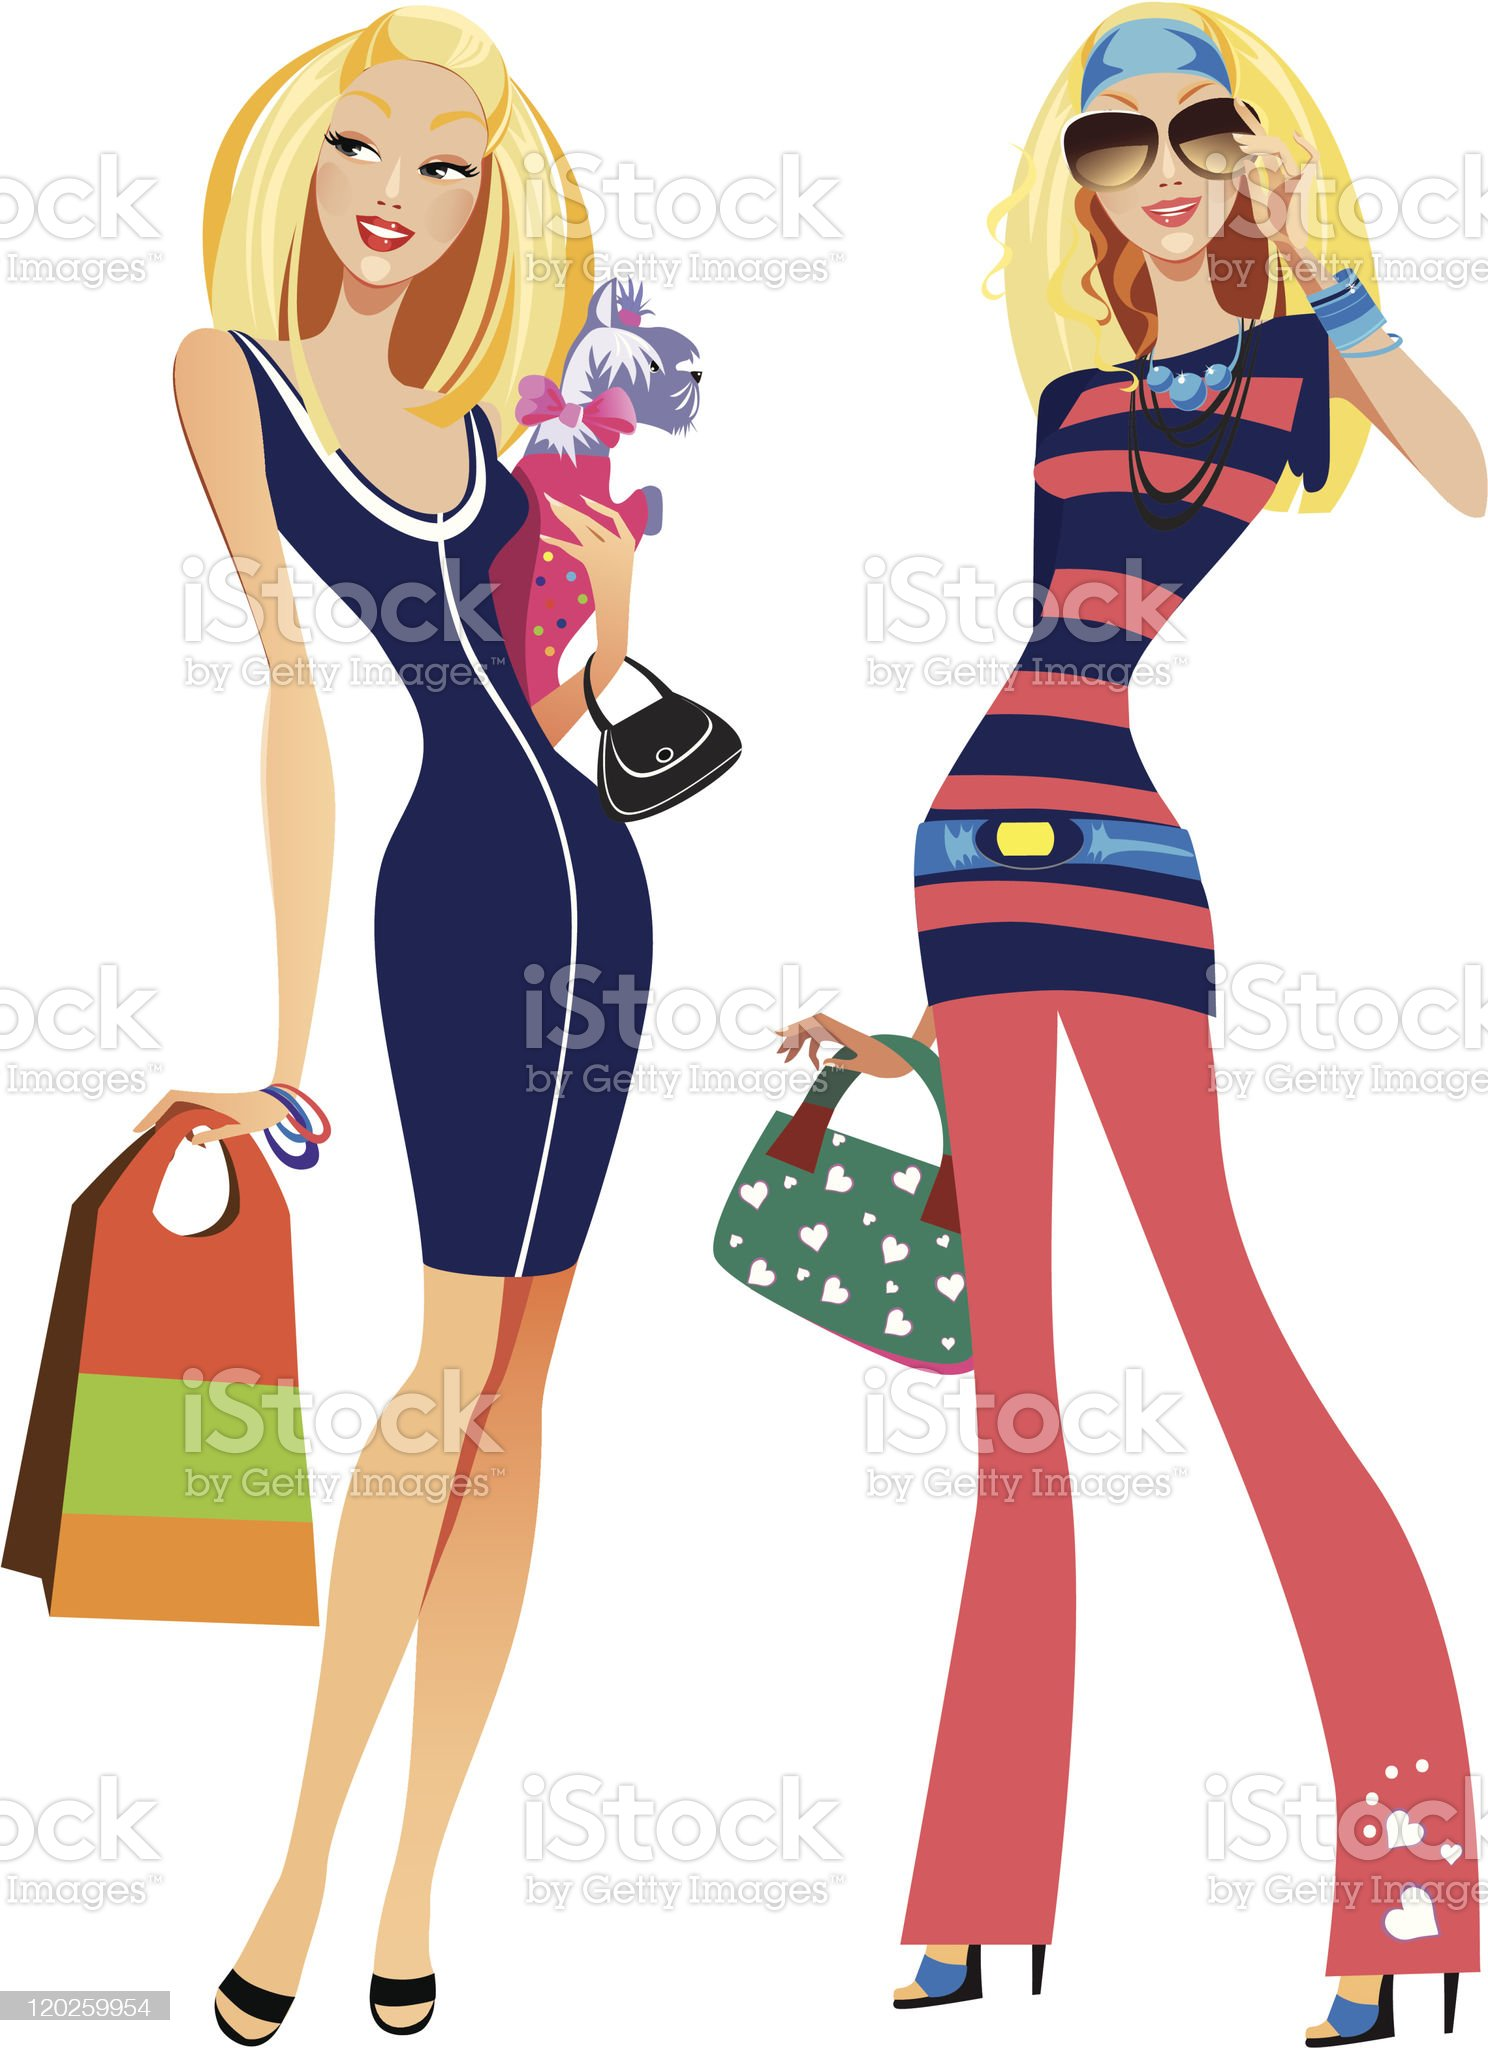 two fashion women royalty-free stock vector art